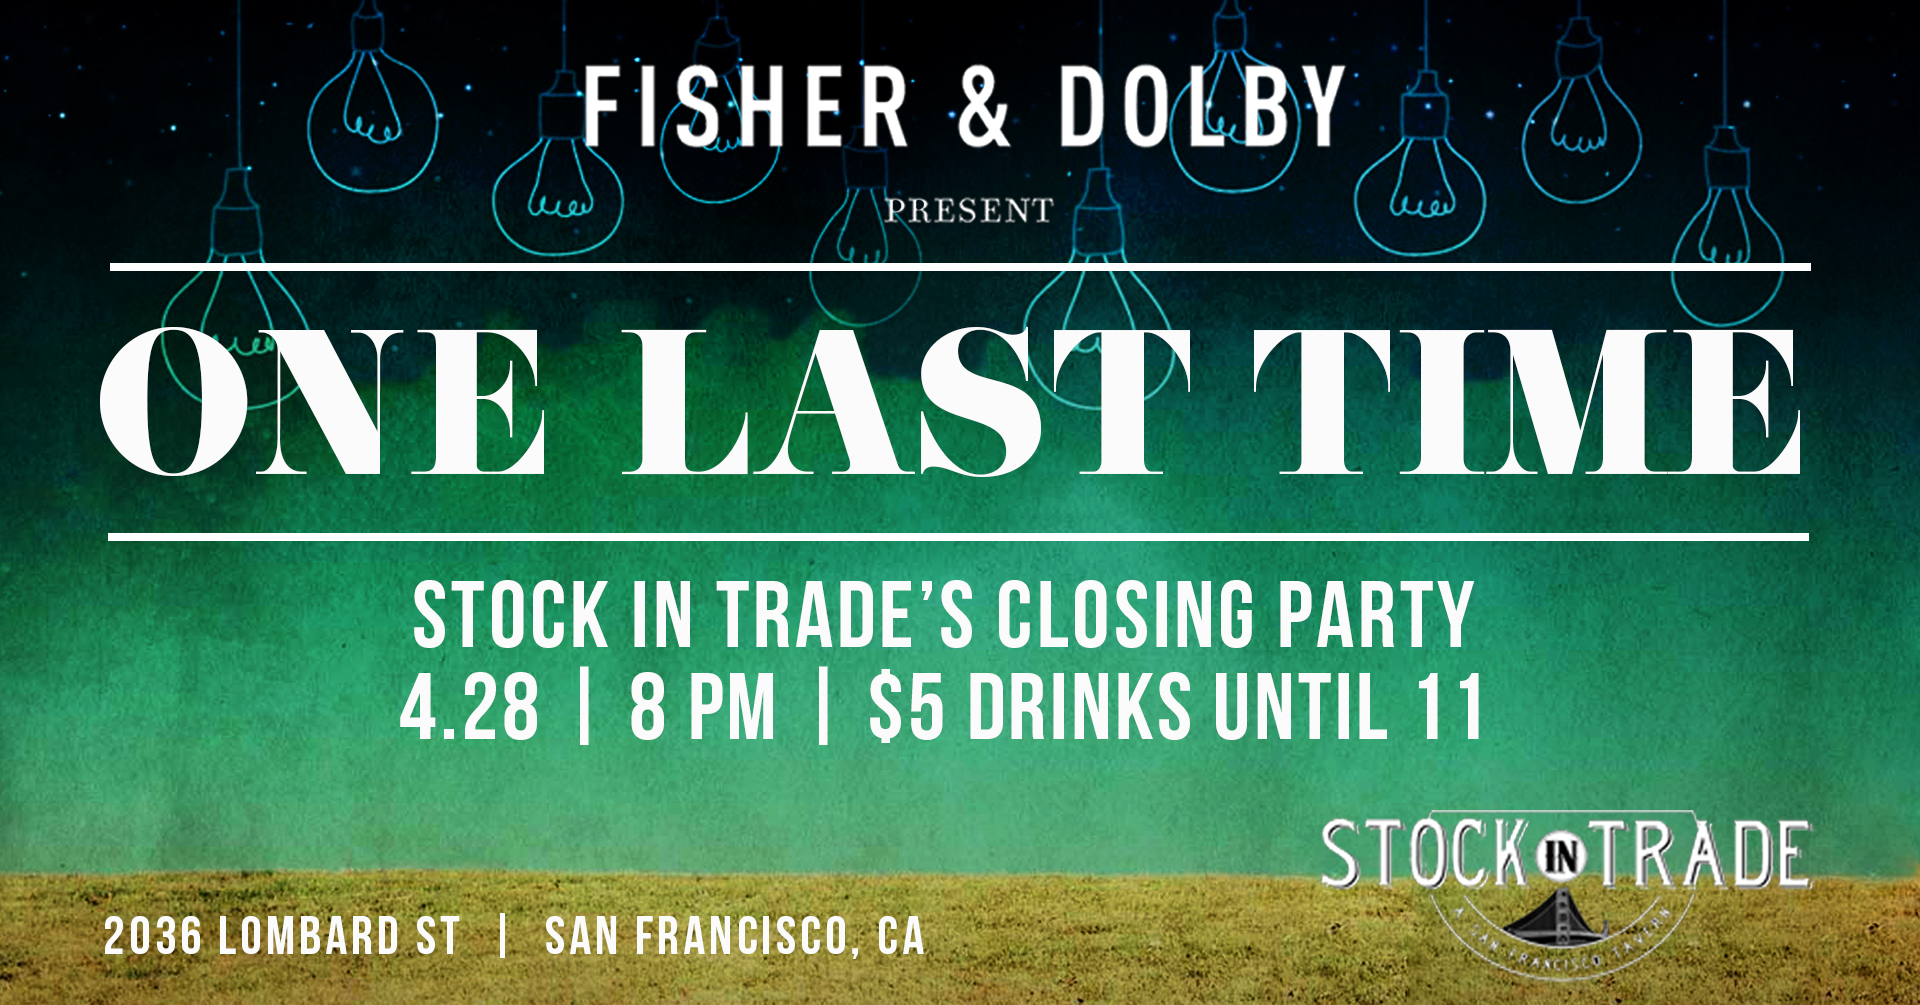 Fisher&Dolby-FB_ClosingParty.jpg